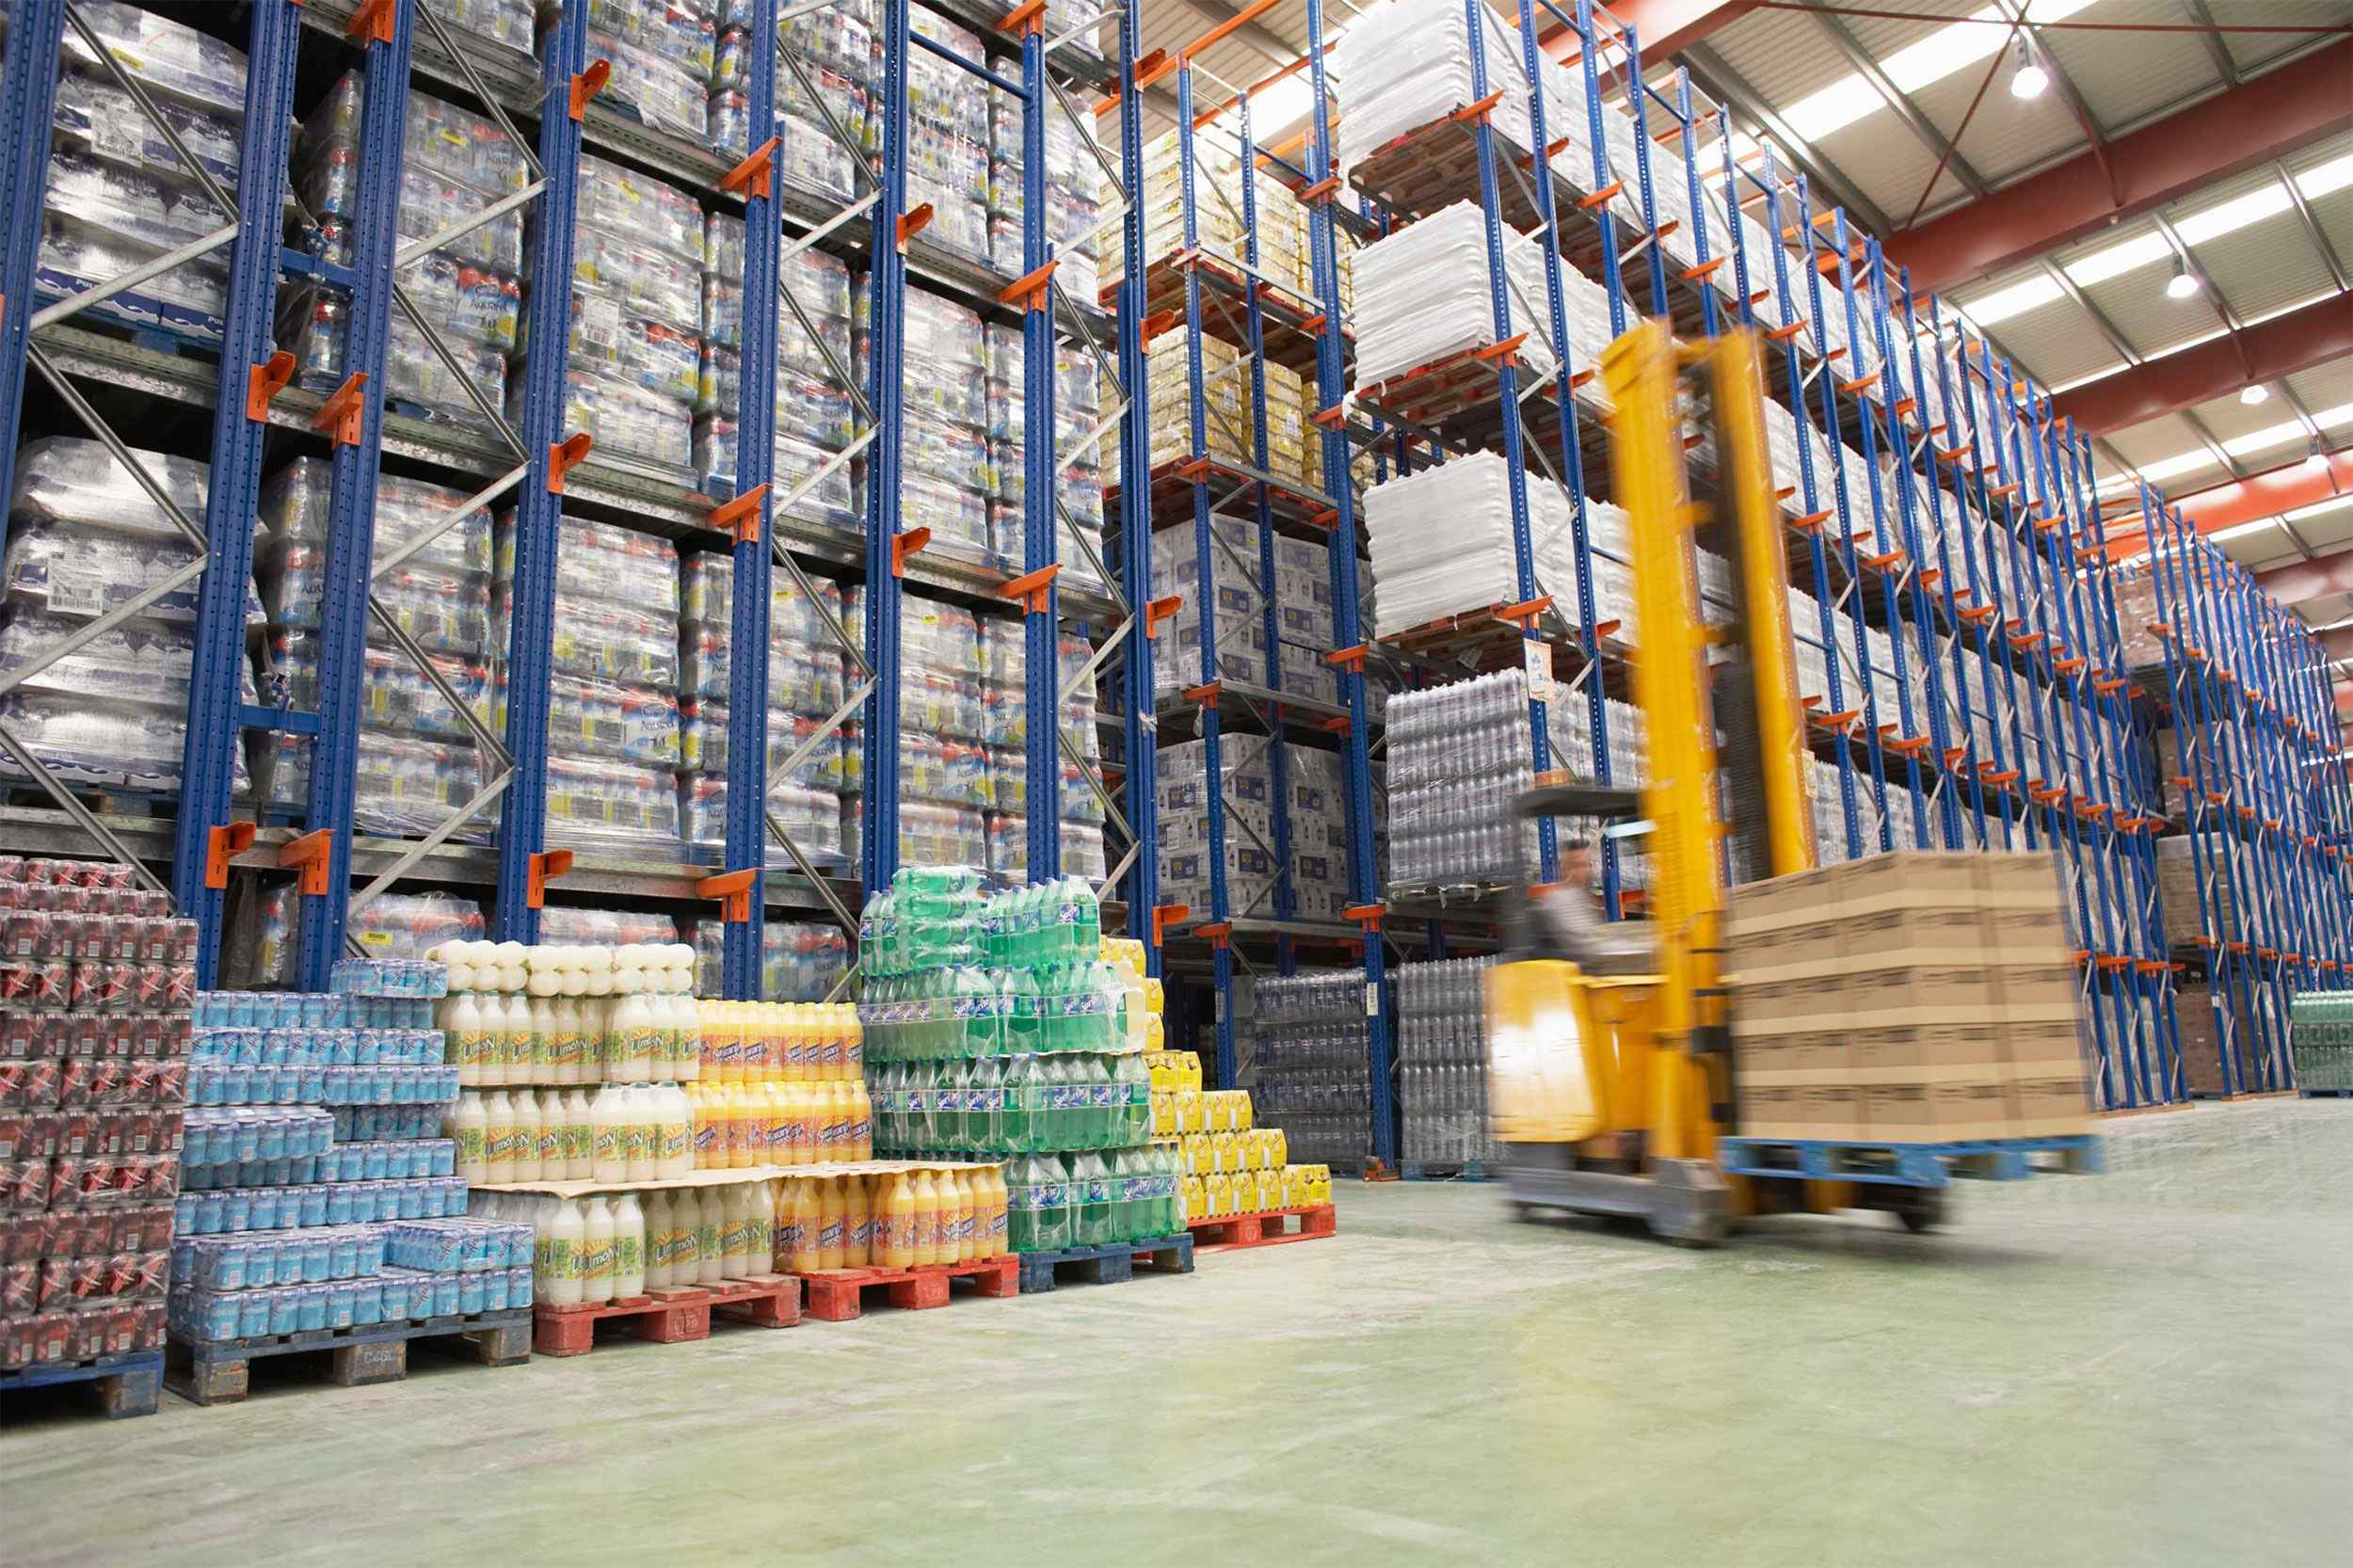 Warehouse-and-lifter.jpg